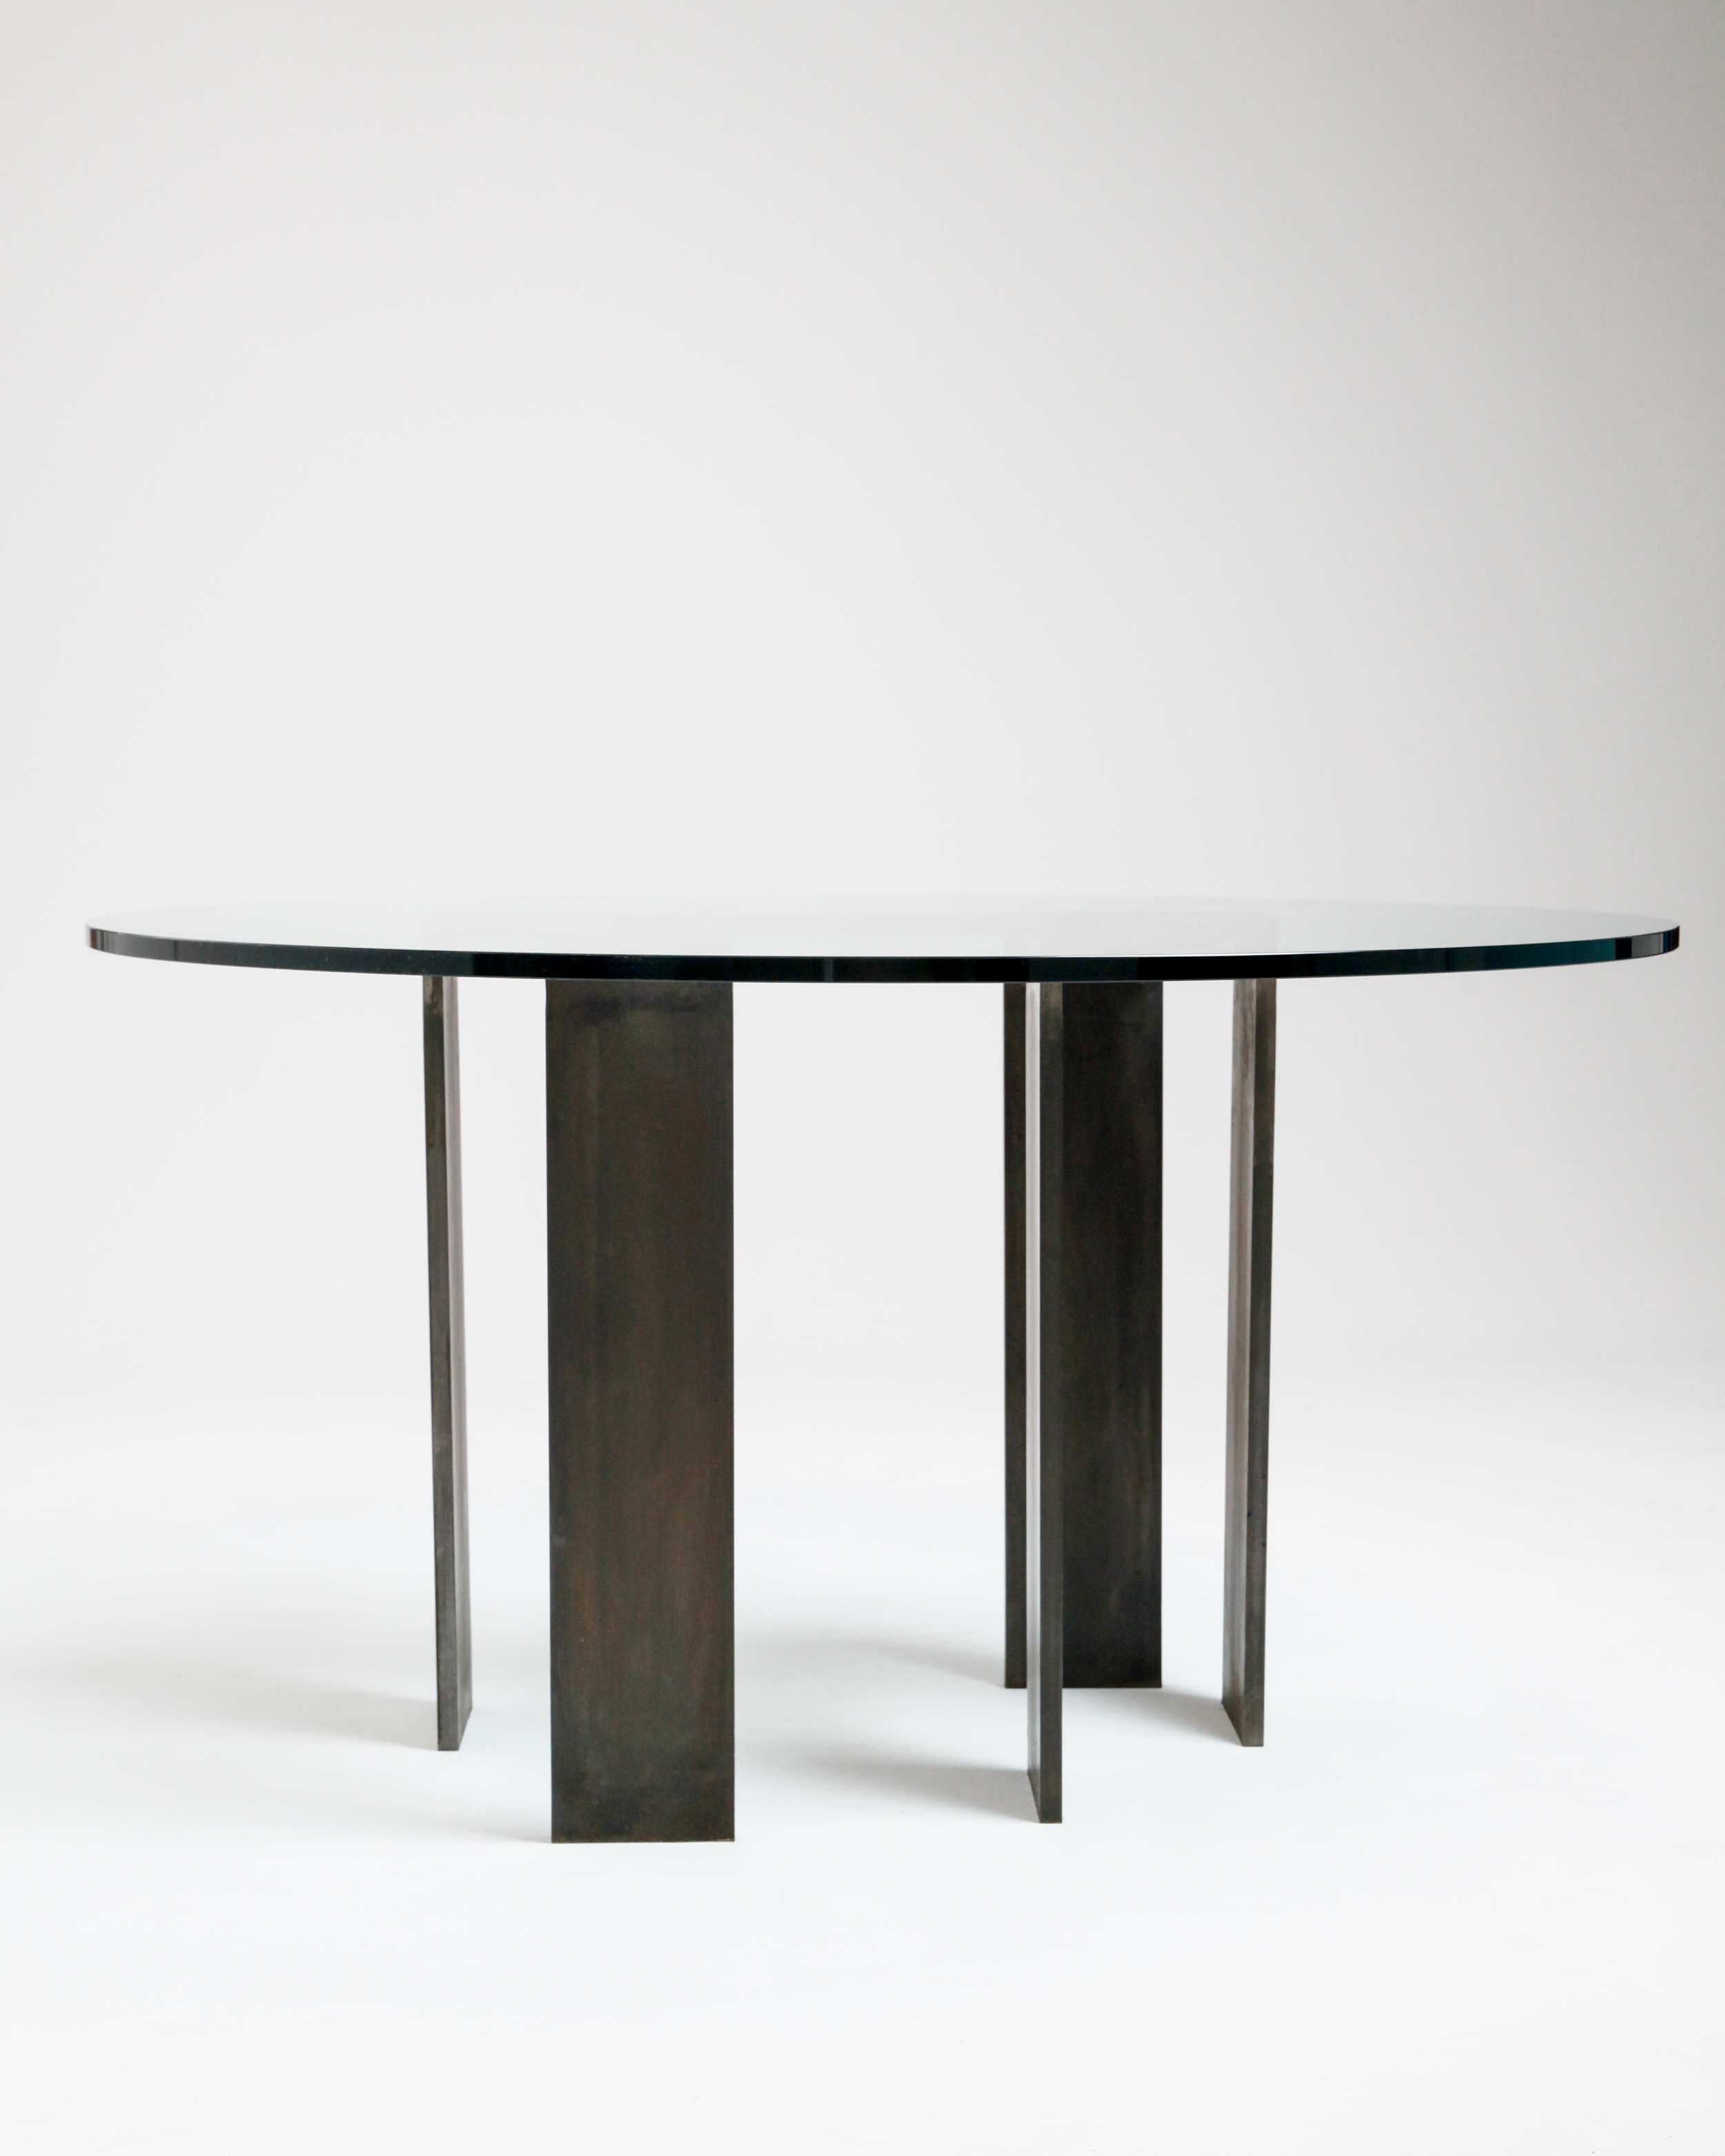 GLASS_TABLE-1643.jpg